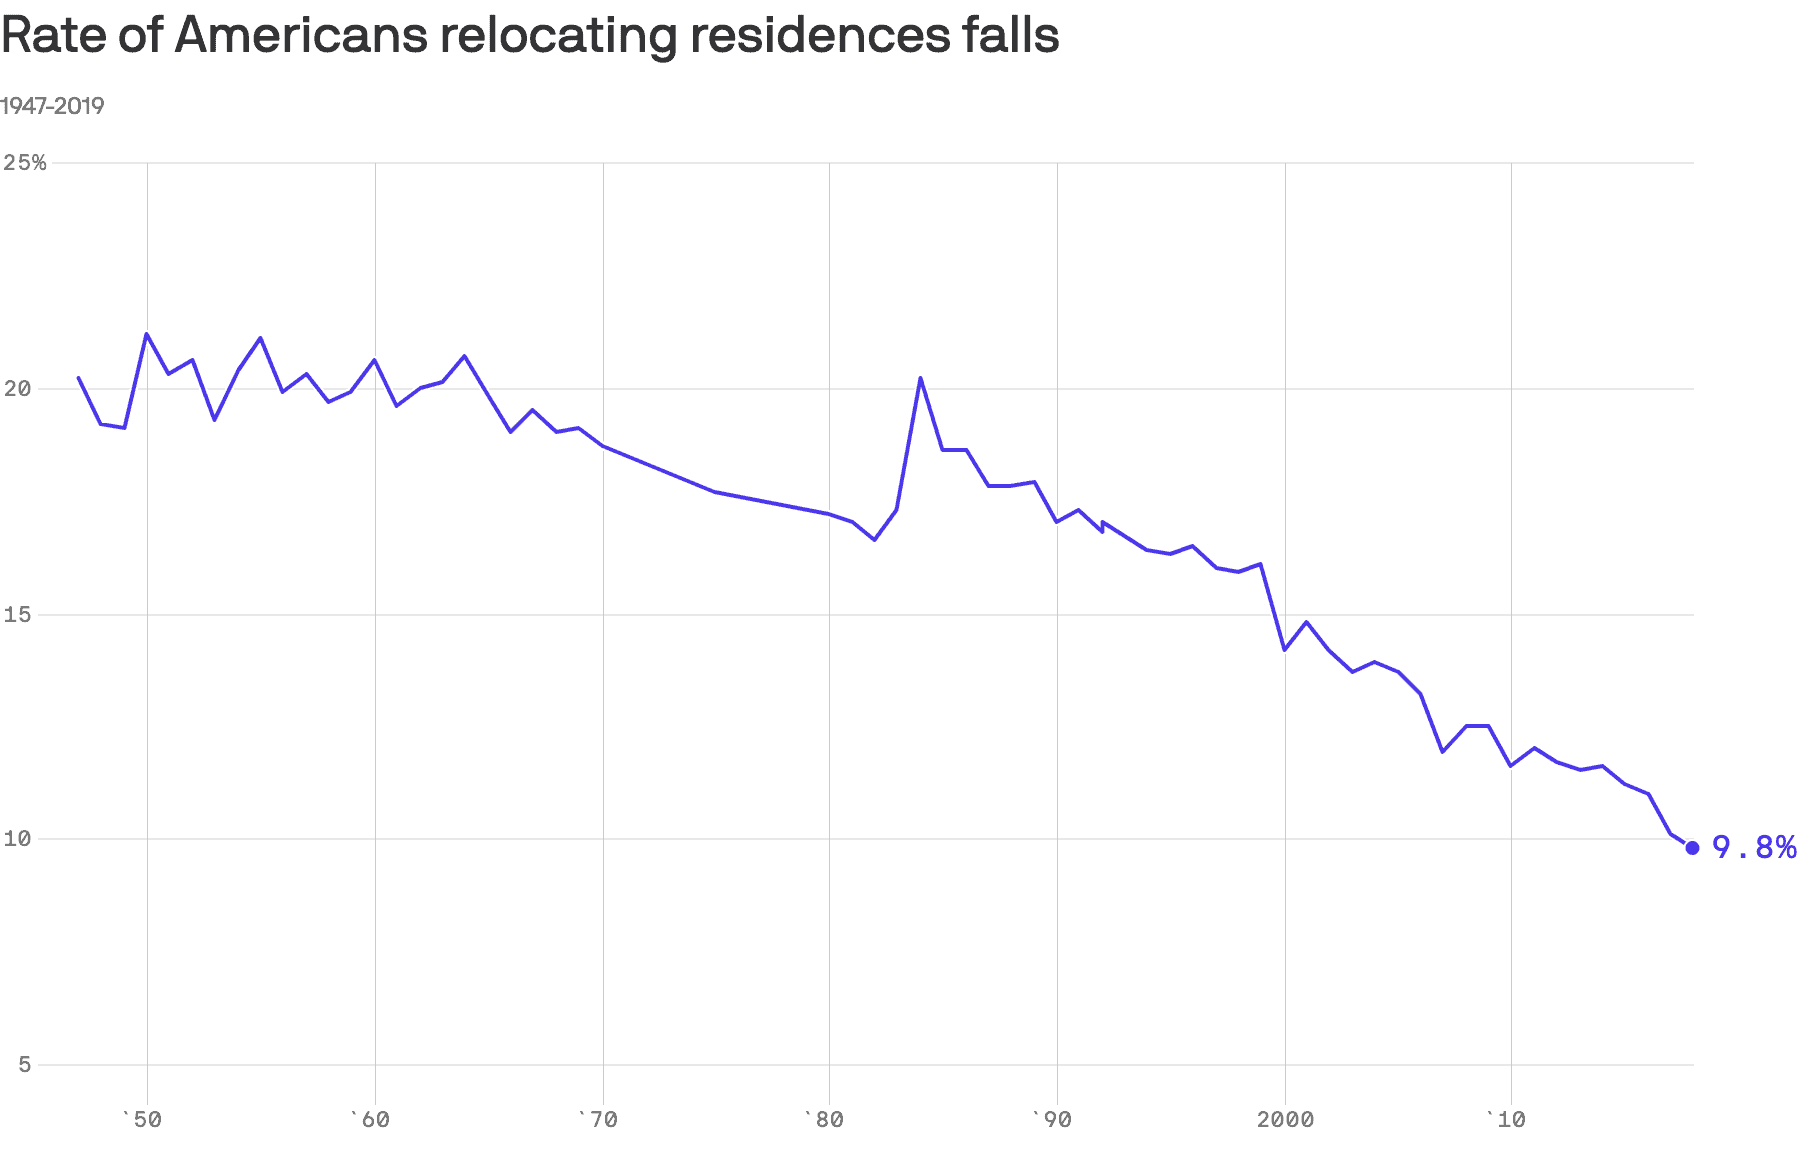 Rate of Americans Relocating Falls Axios